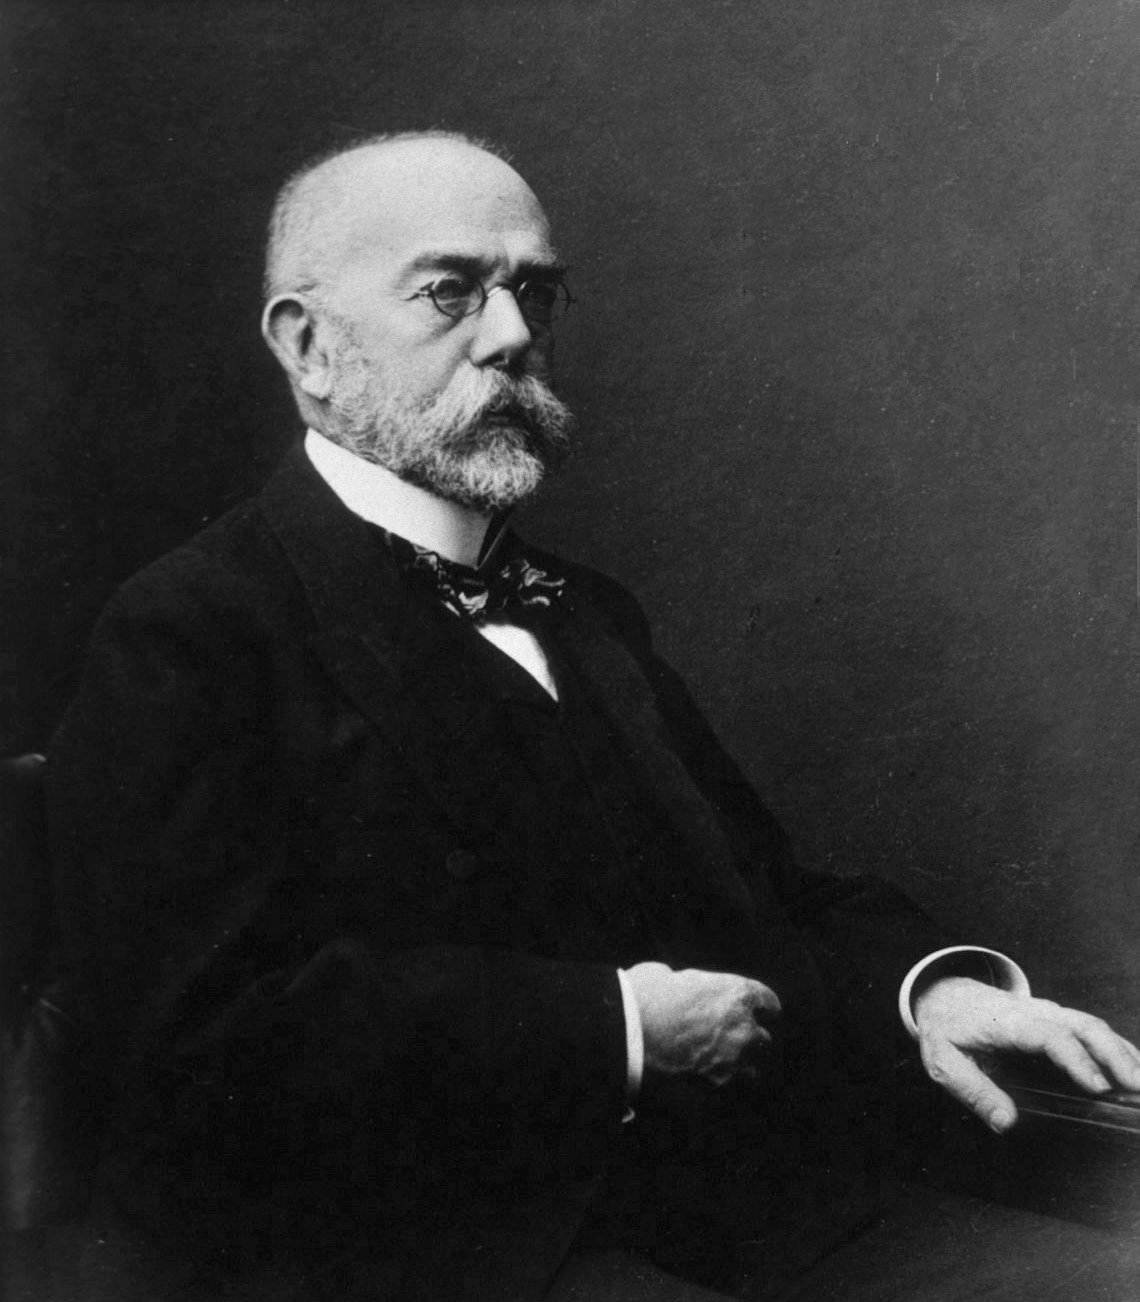 robert koch Robert koch was born on december 11,1843 in germanyhe took his medical  degree in 1866on april 22,1876 he wrote to ferdinand cohn,prof of botany  aboyt.